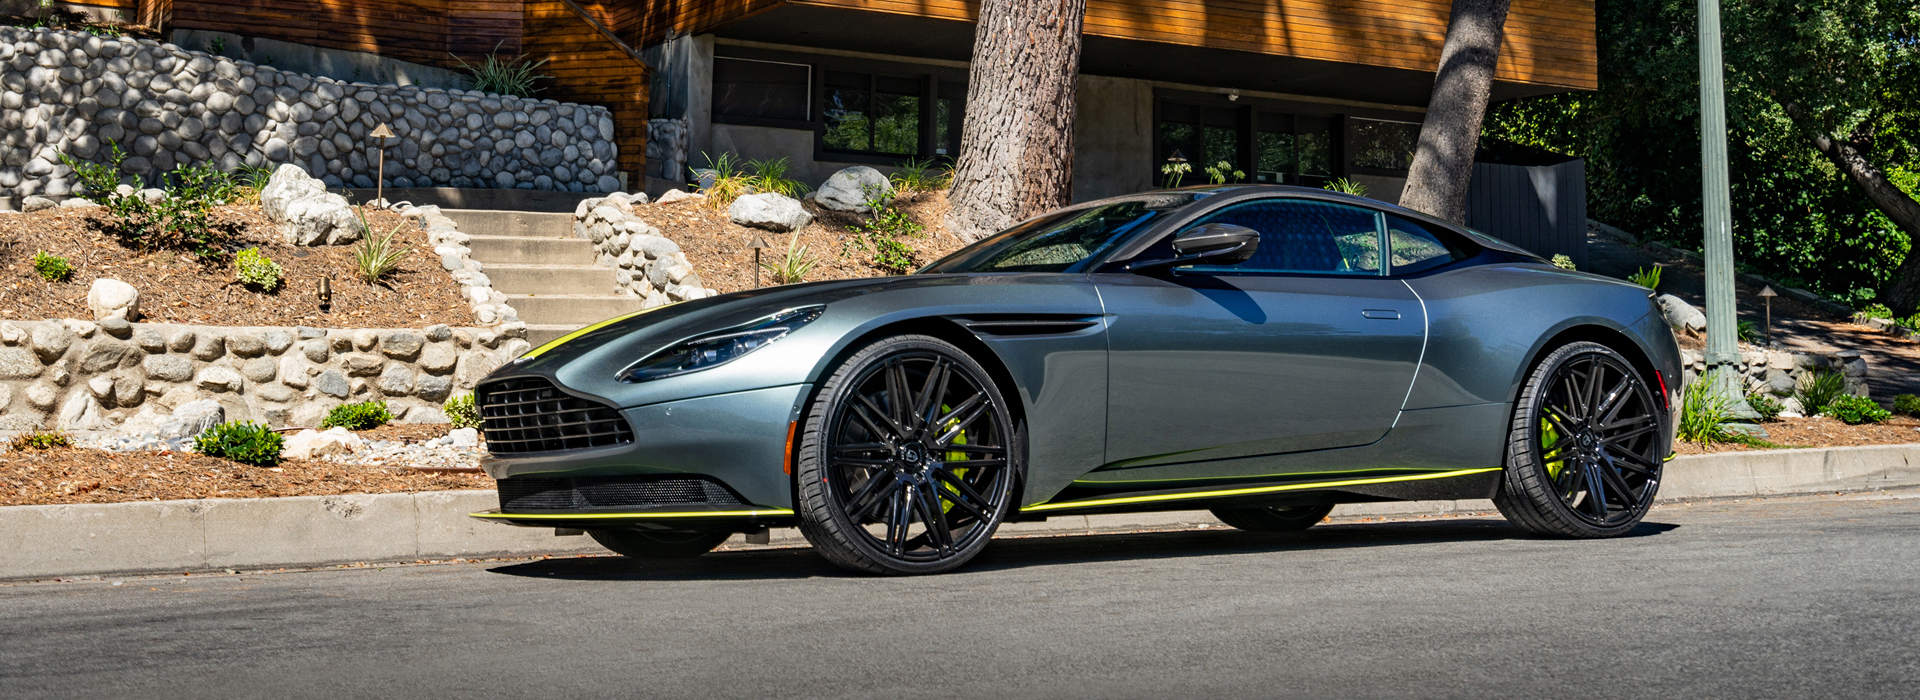 Lionhart LH-Five Tires Aston Martin DB11